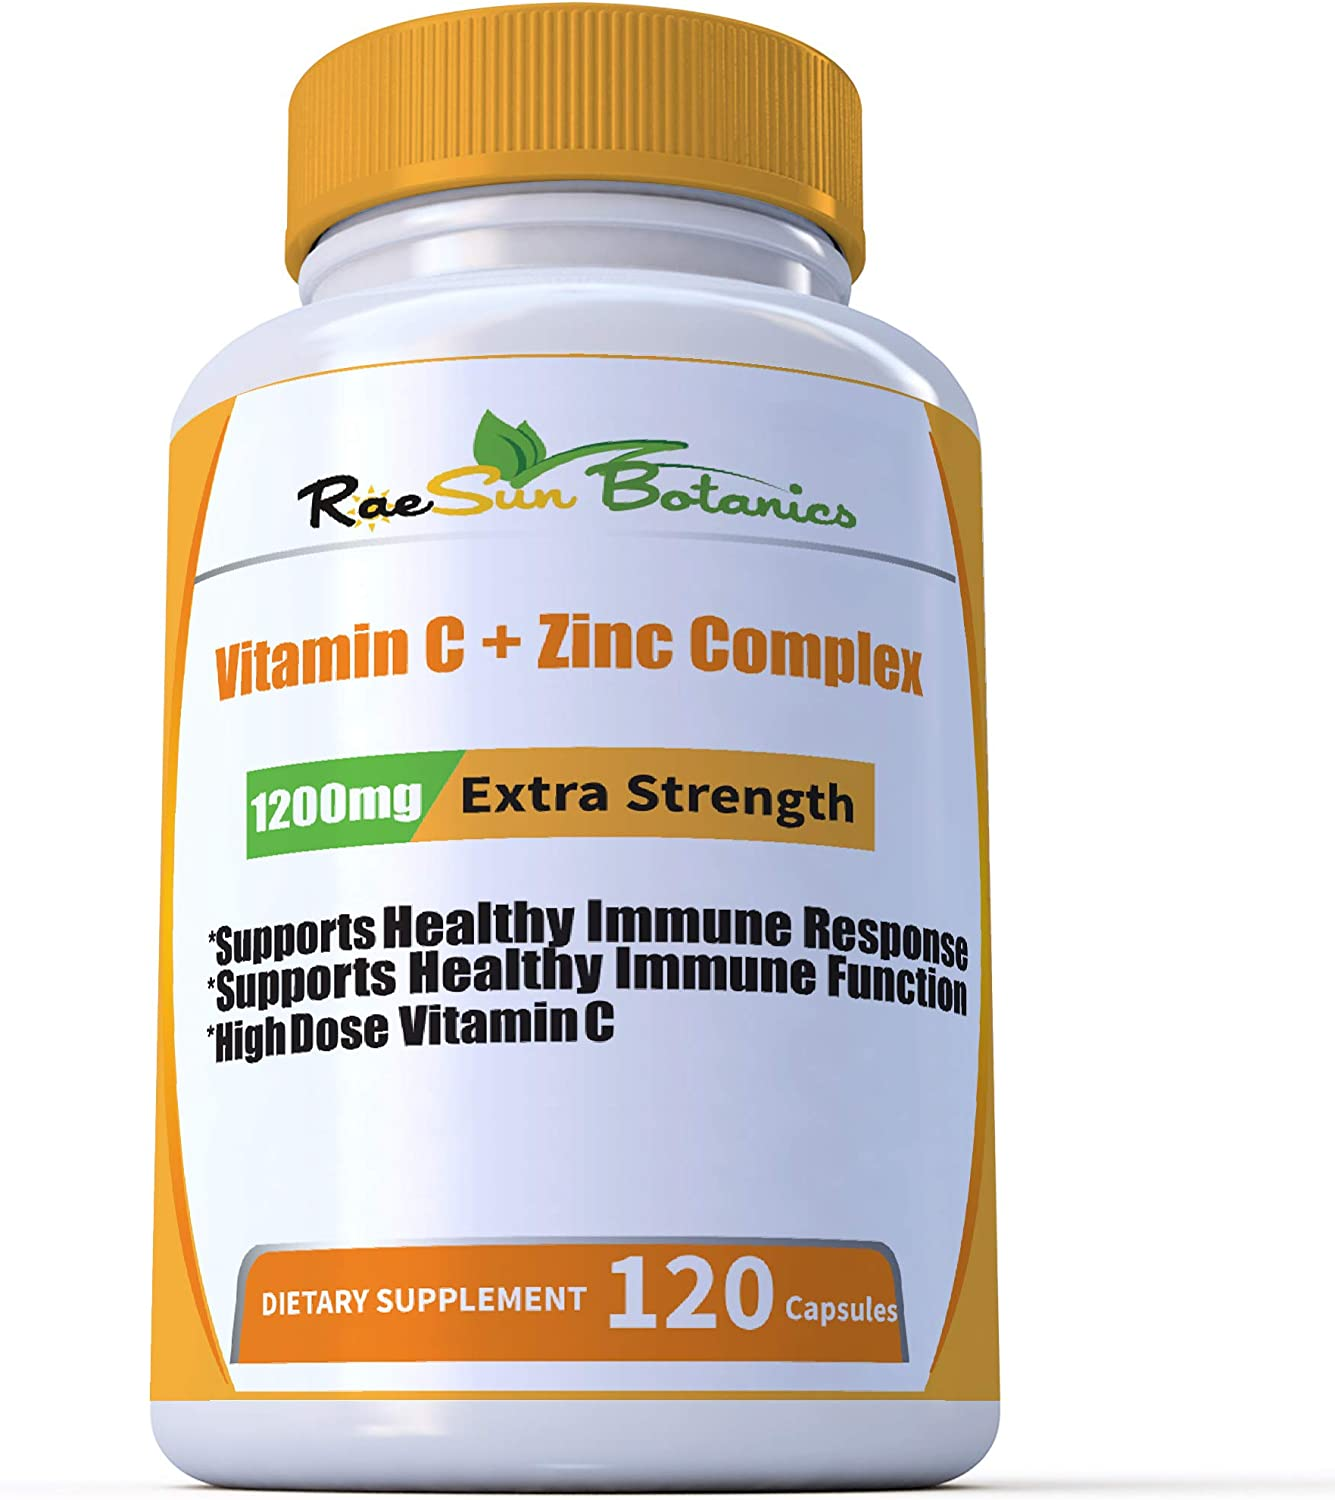 RaeSun Botanics High Dose Vitamin C + Zinc Complex for Immune Support Health 120 Capsule 2 Month Supply Vegetable Capsule by RaeSun Botanics